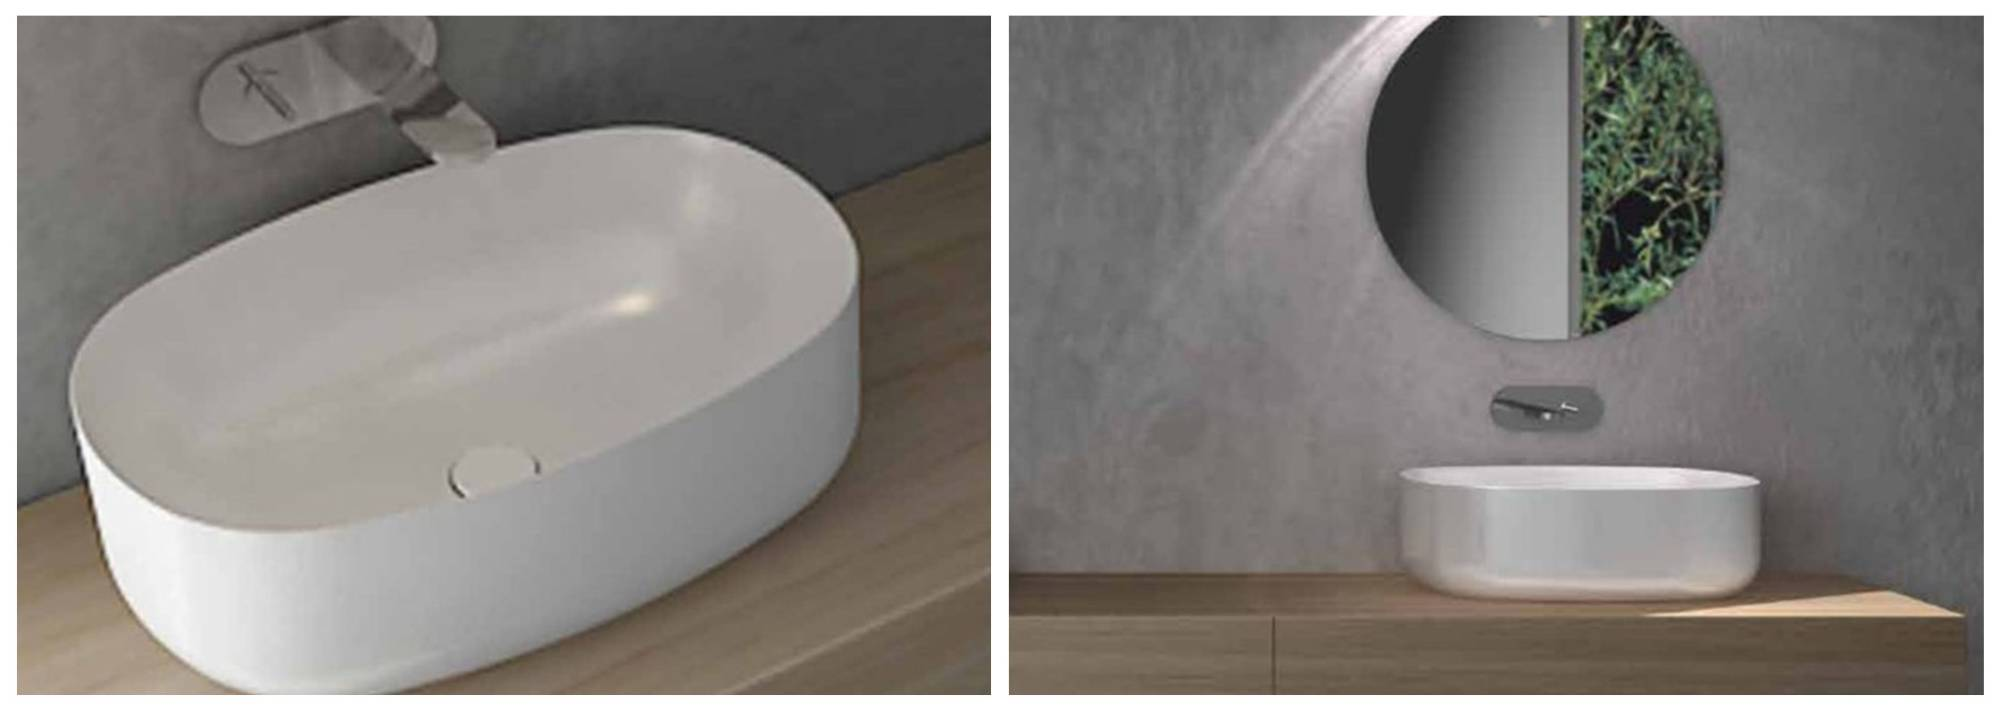 lay-on-Washbasin-nic-Design-series-semplice-to-support-without-hole